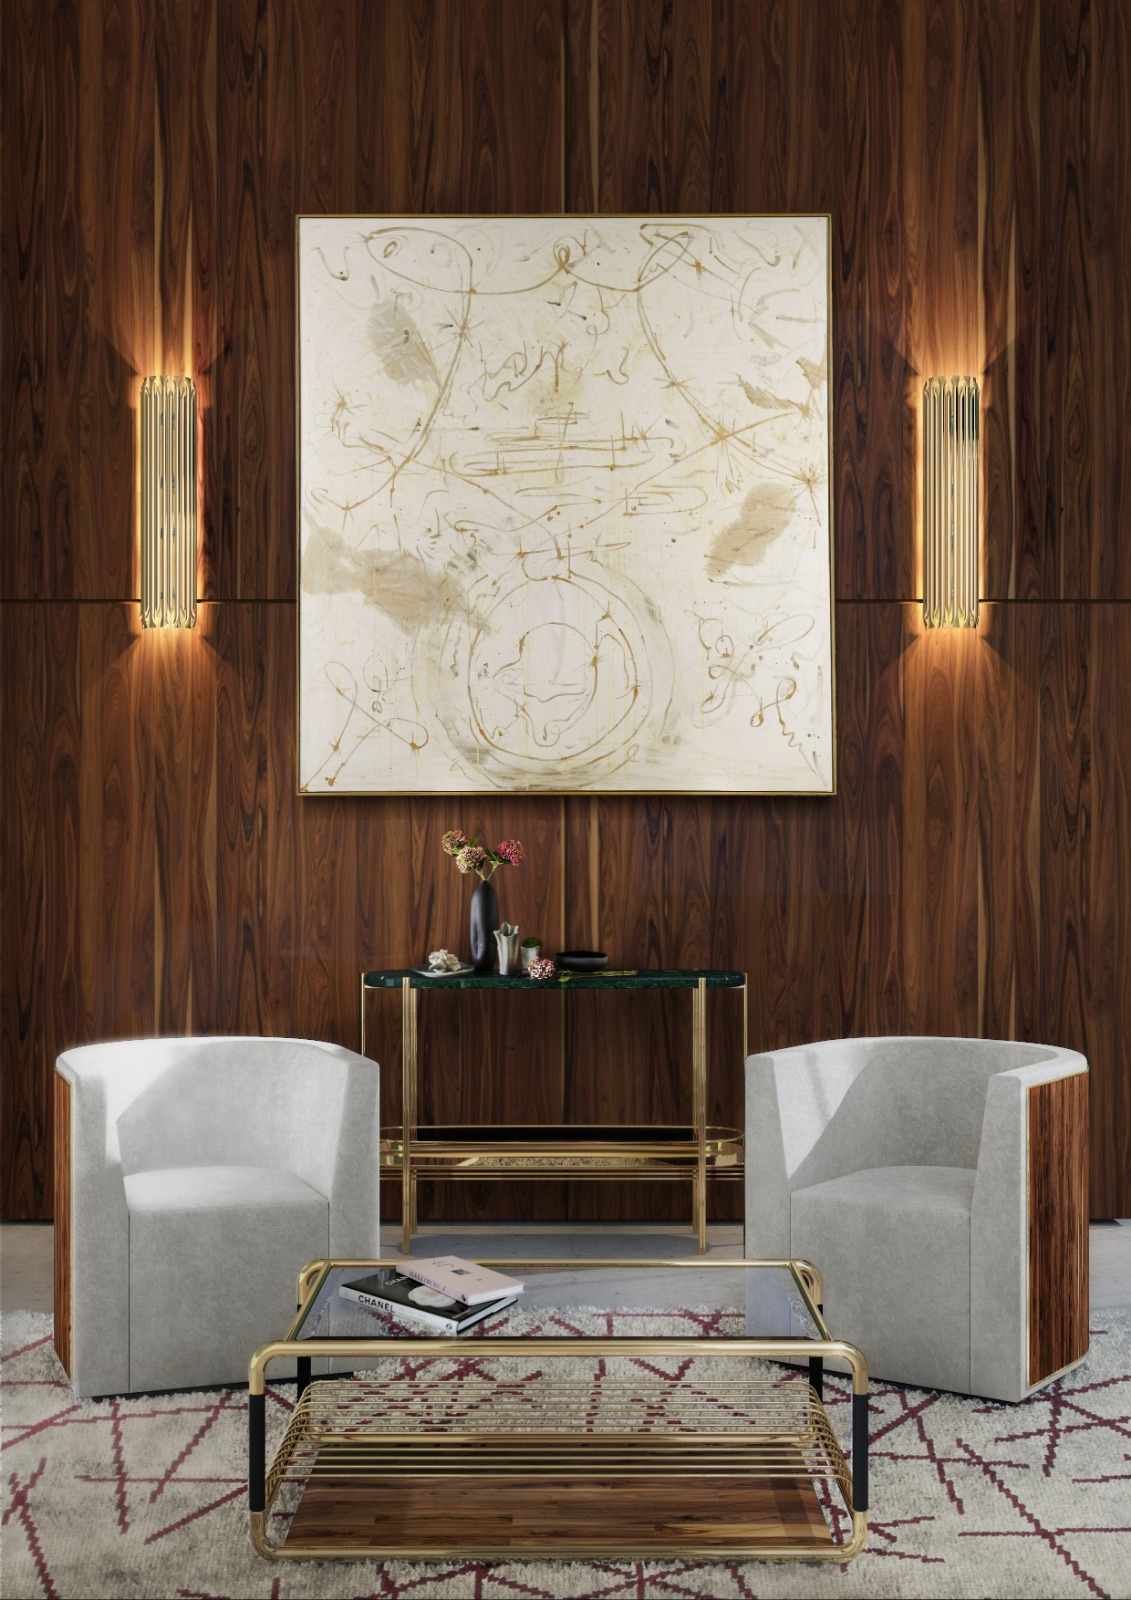 living-room-mid-century-modern-living-room-inspired-by-wood-delightfull-essential-home-insplosion